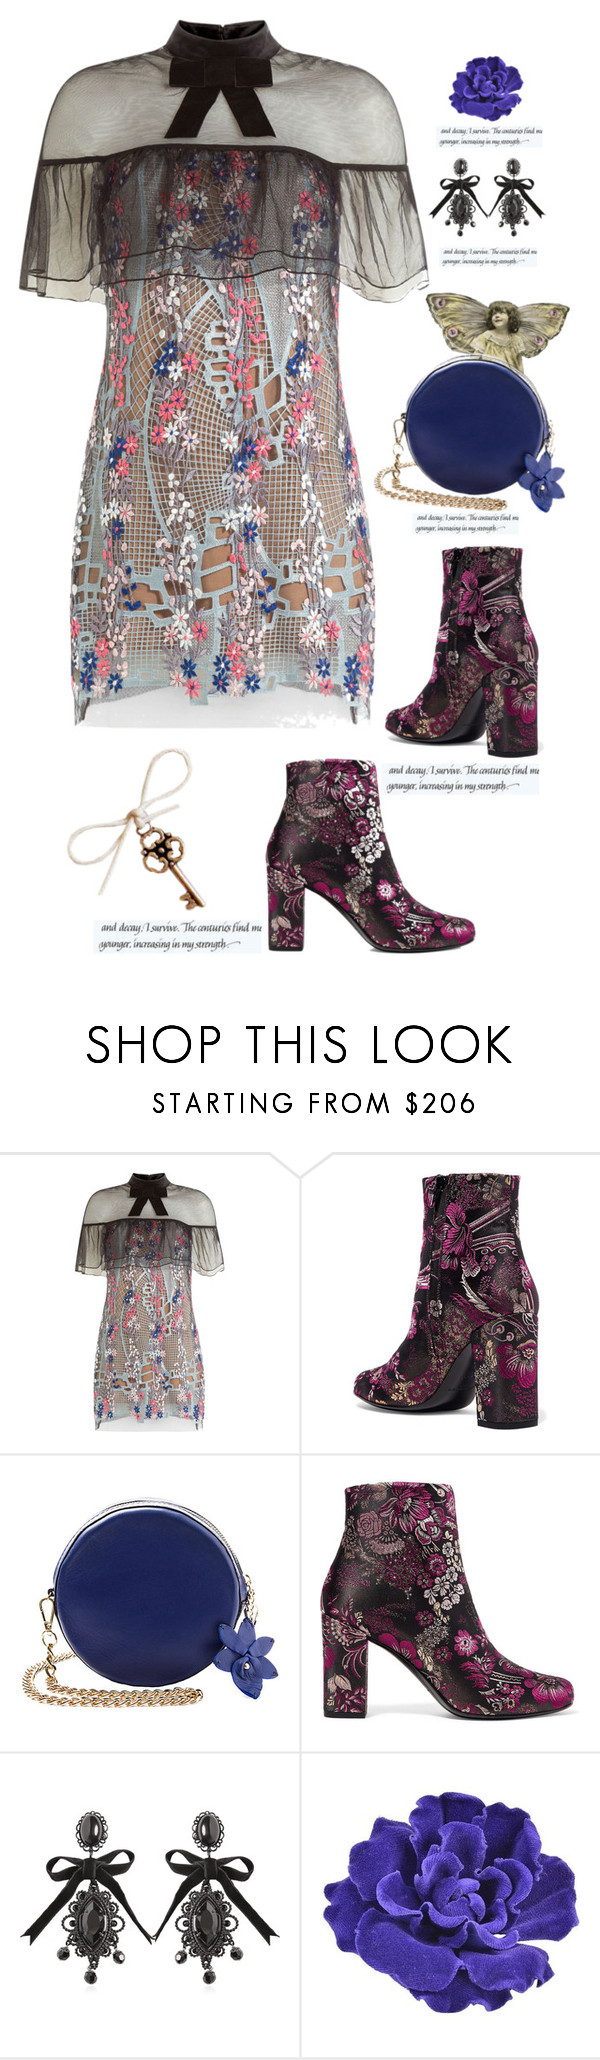 """A Step Back in Time'"" by dianefantasy ❤ liked on Polyvore featuring self-portrait, Yves Saint Laurent, Dsquared2 and Chanel"